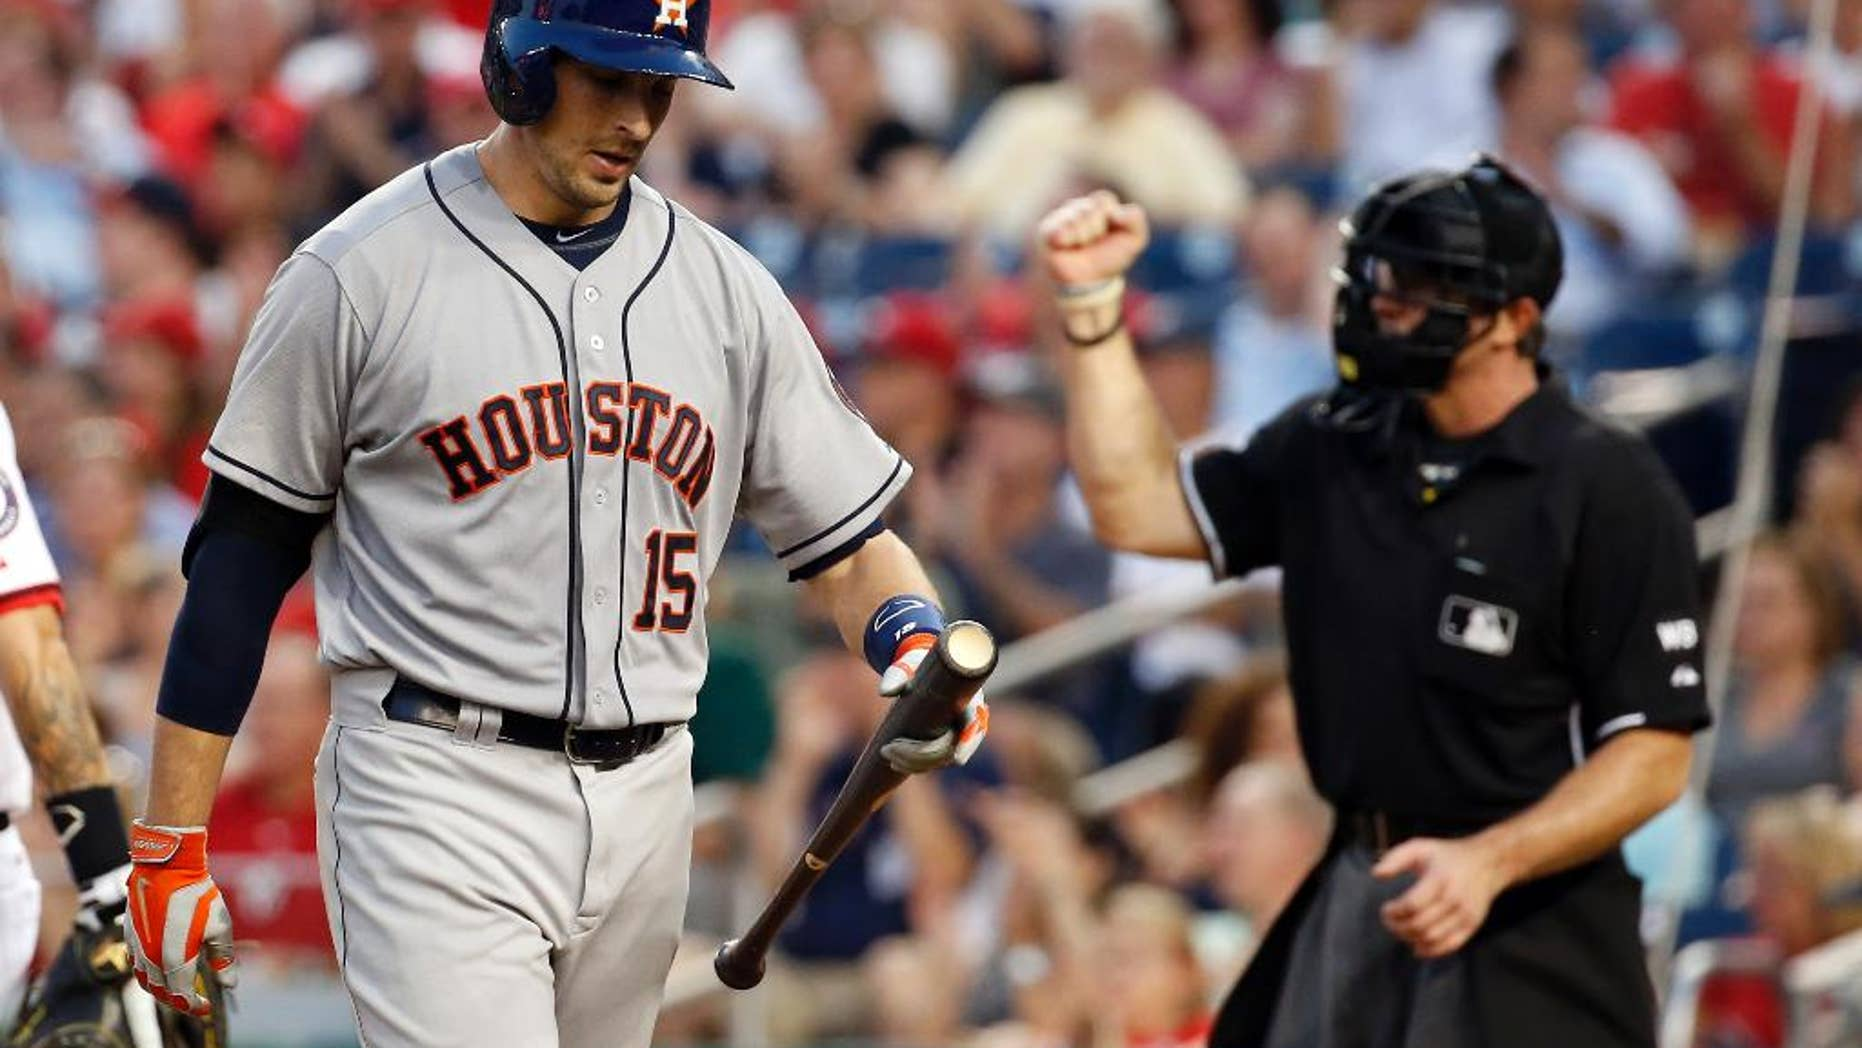 Houston Astros' Jason Castro walks away after striking out with the bases loaded during the fourth inning of an interleague baseball game against the Washington Nationals at Nationals Park Tuesday, June 17, 2014, in Washington. (AP Photo/Alex Brandon)